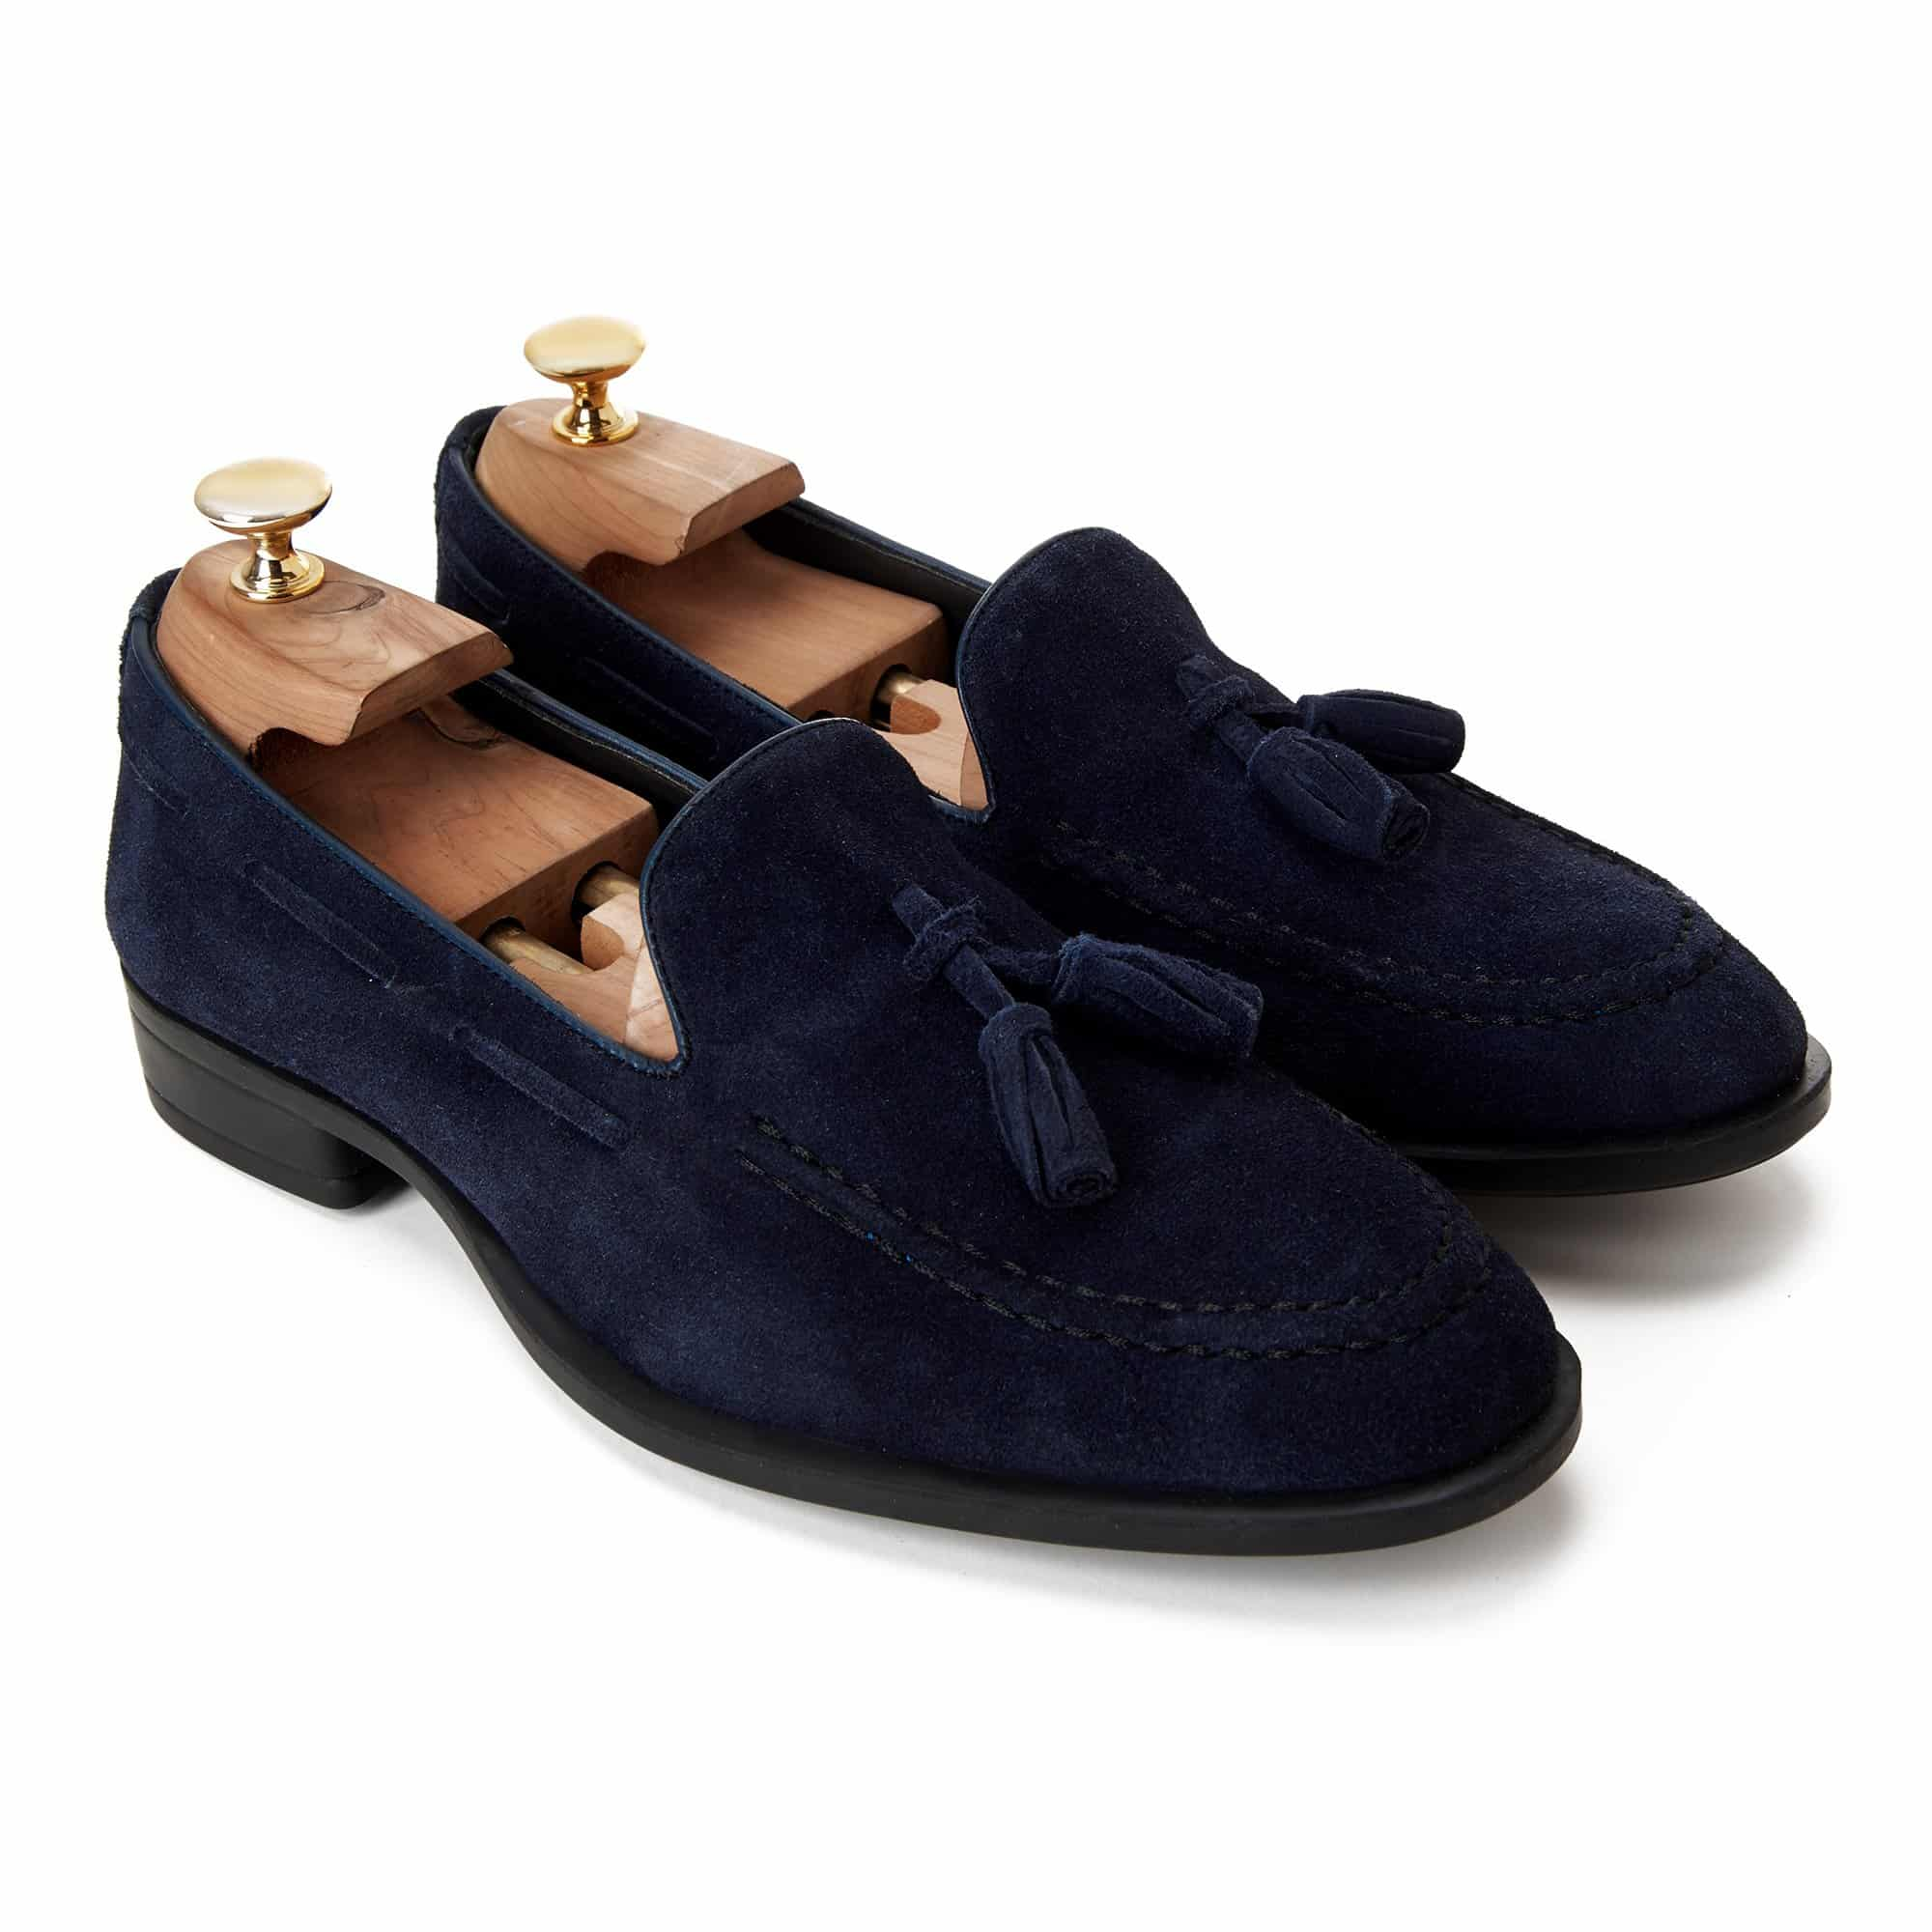 06 Suede Blue Loafer